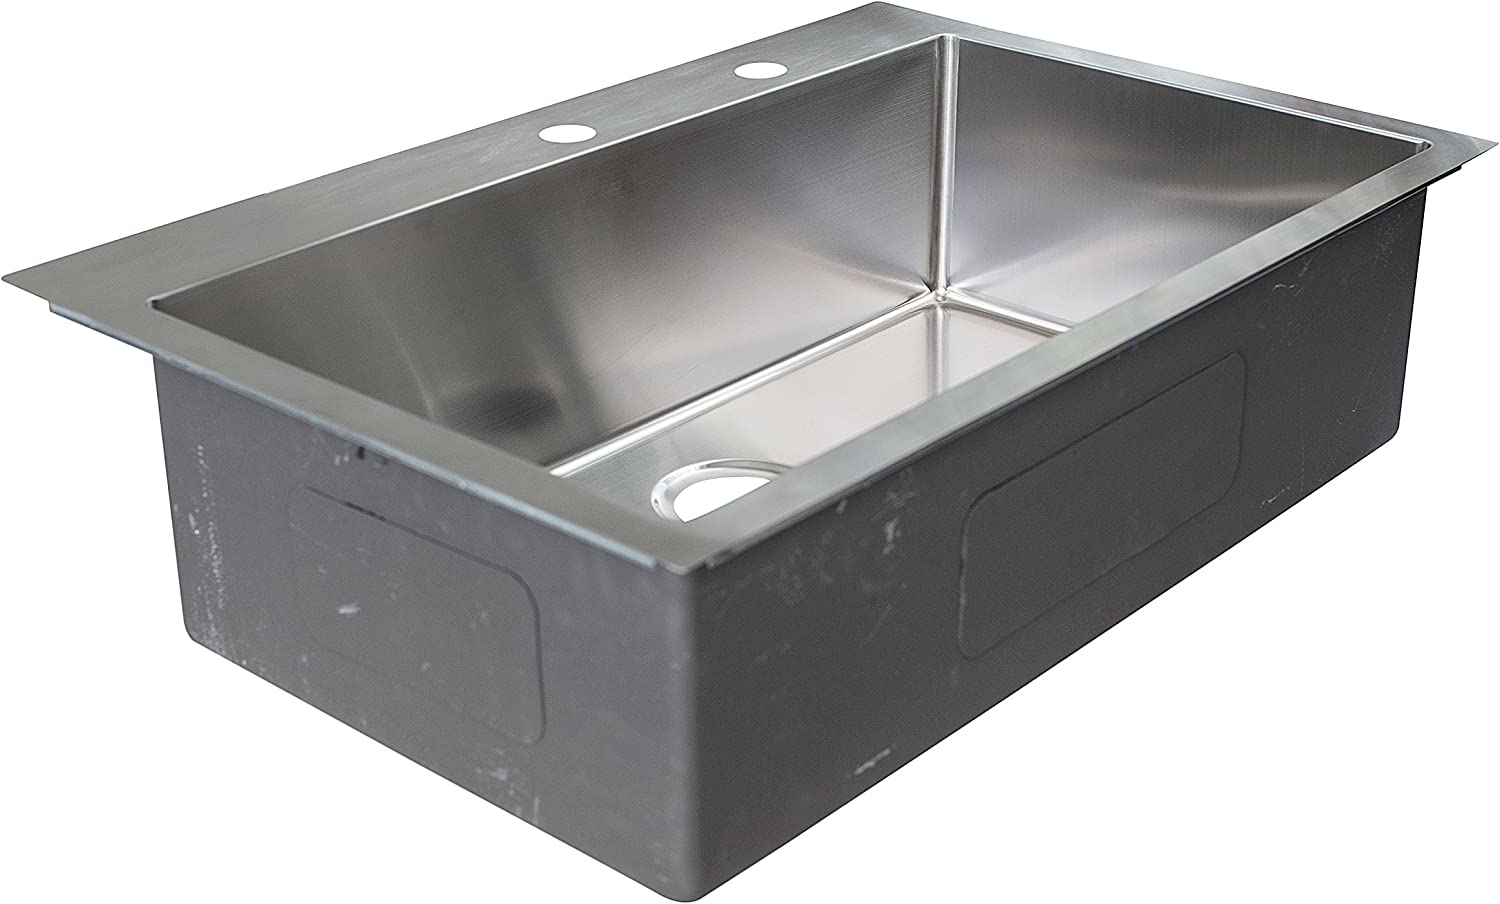 Franke Hfs3322 2 Vector 33 5 33 Compatible Dual Mount Single Bowl Kitchen Sink With Two Holes And Fast In Installation System Stainless Steel Amazon Com